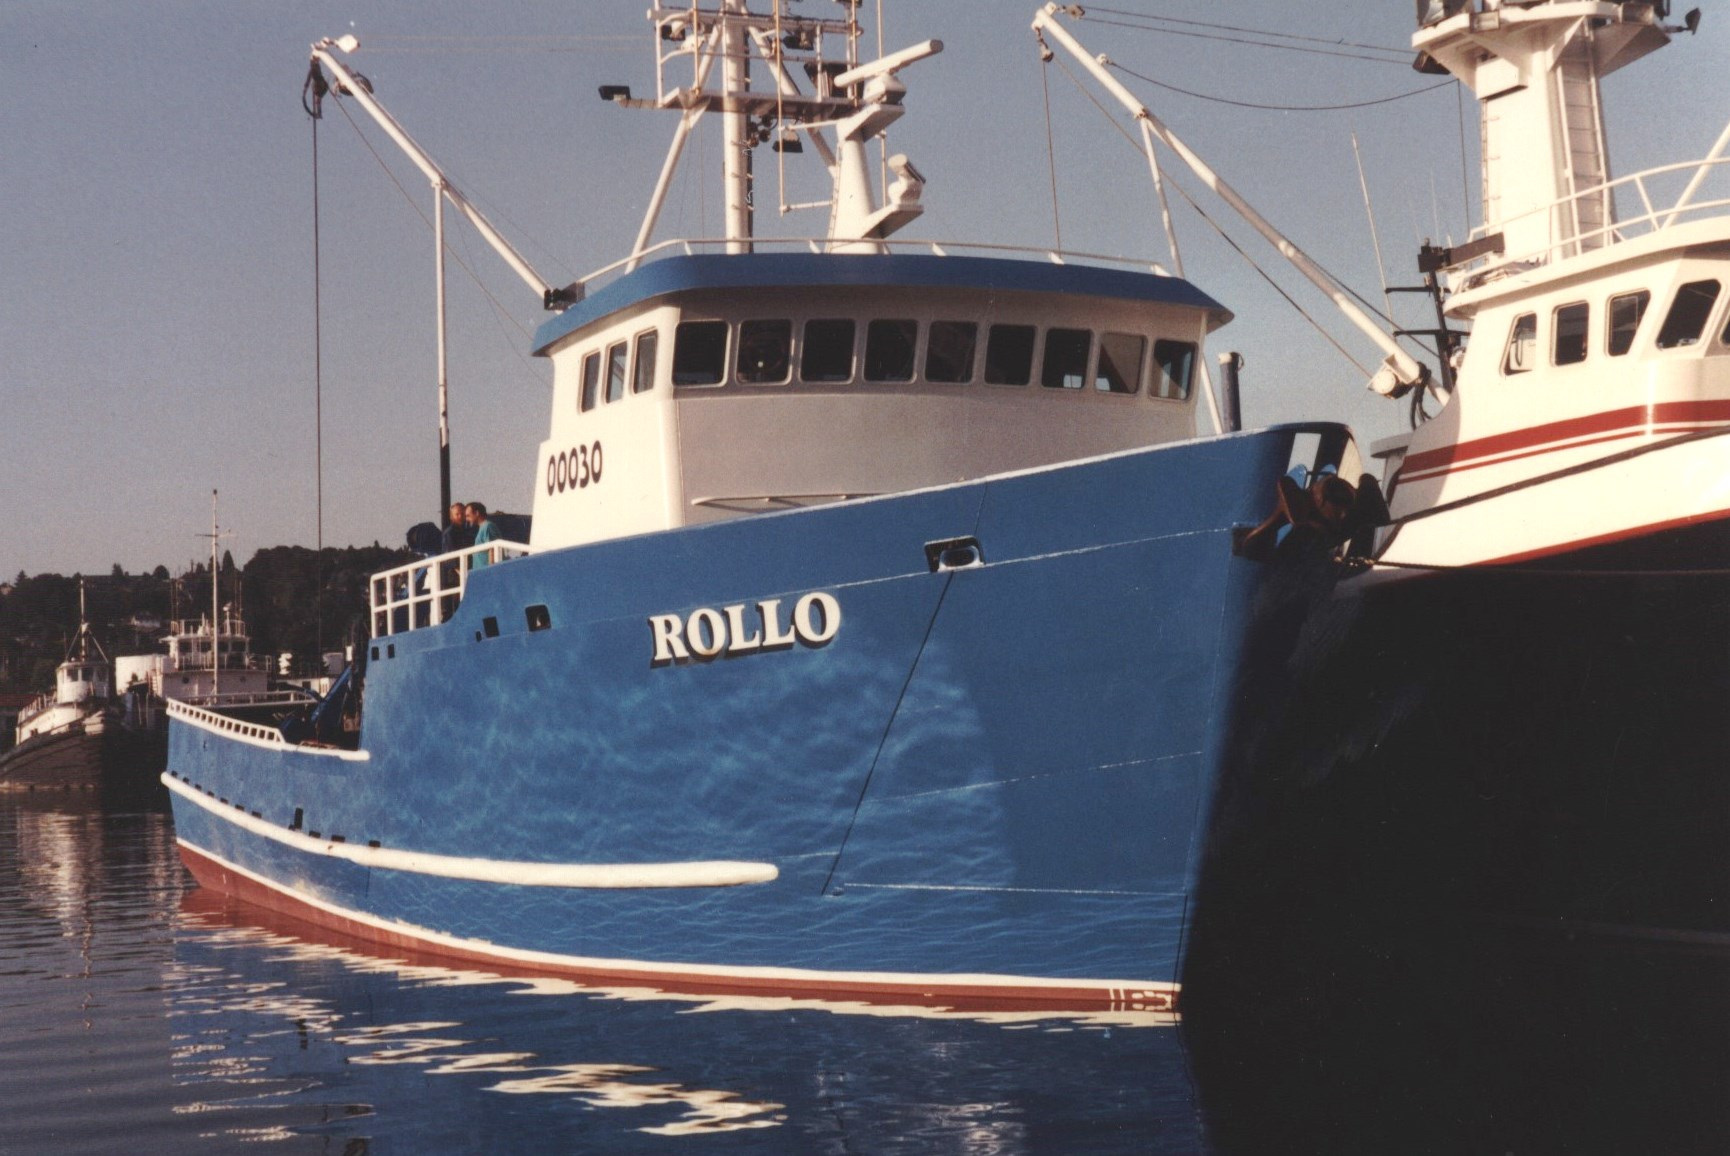 rollo after